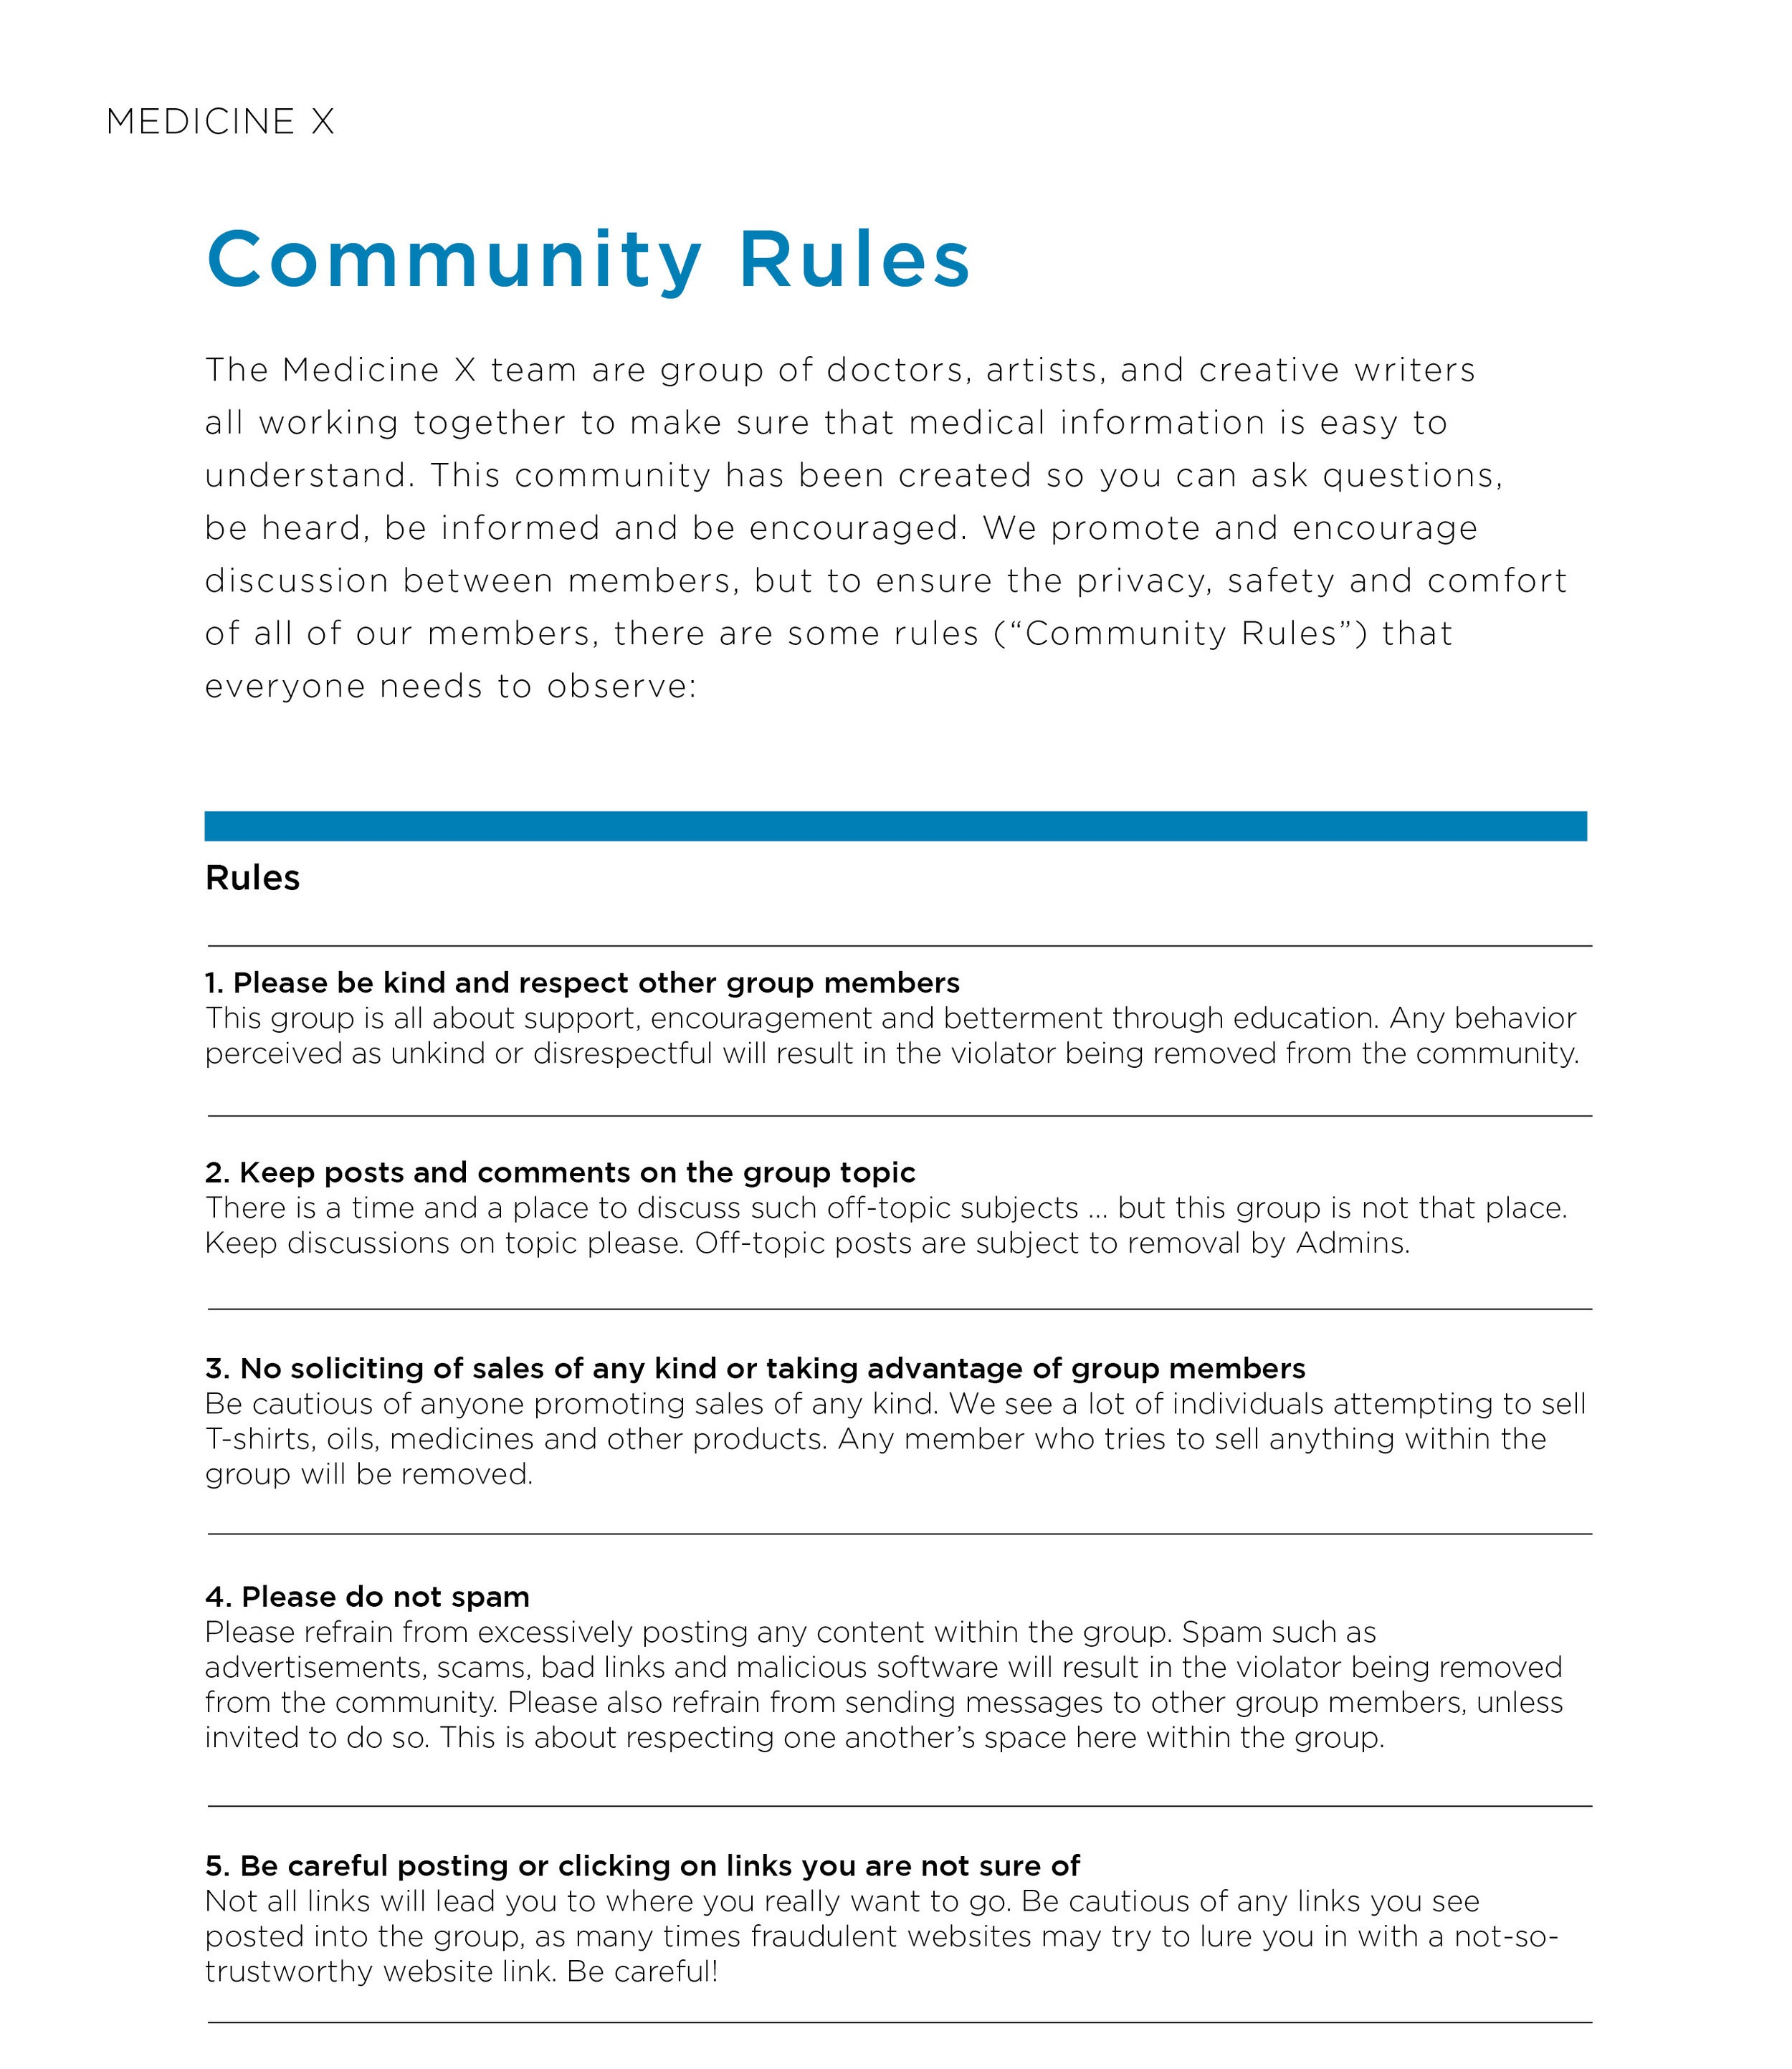 community+rules+29.4.19+page+1.jpg